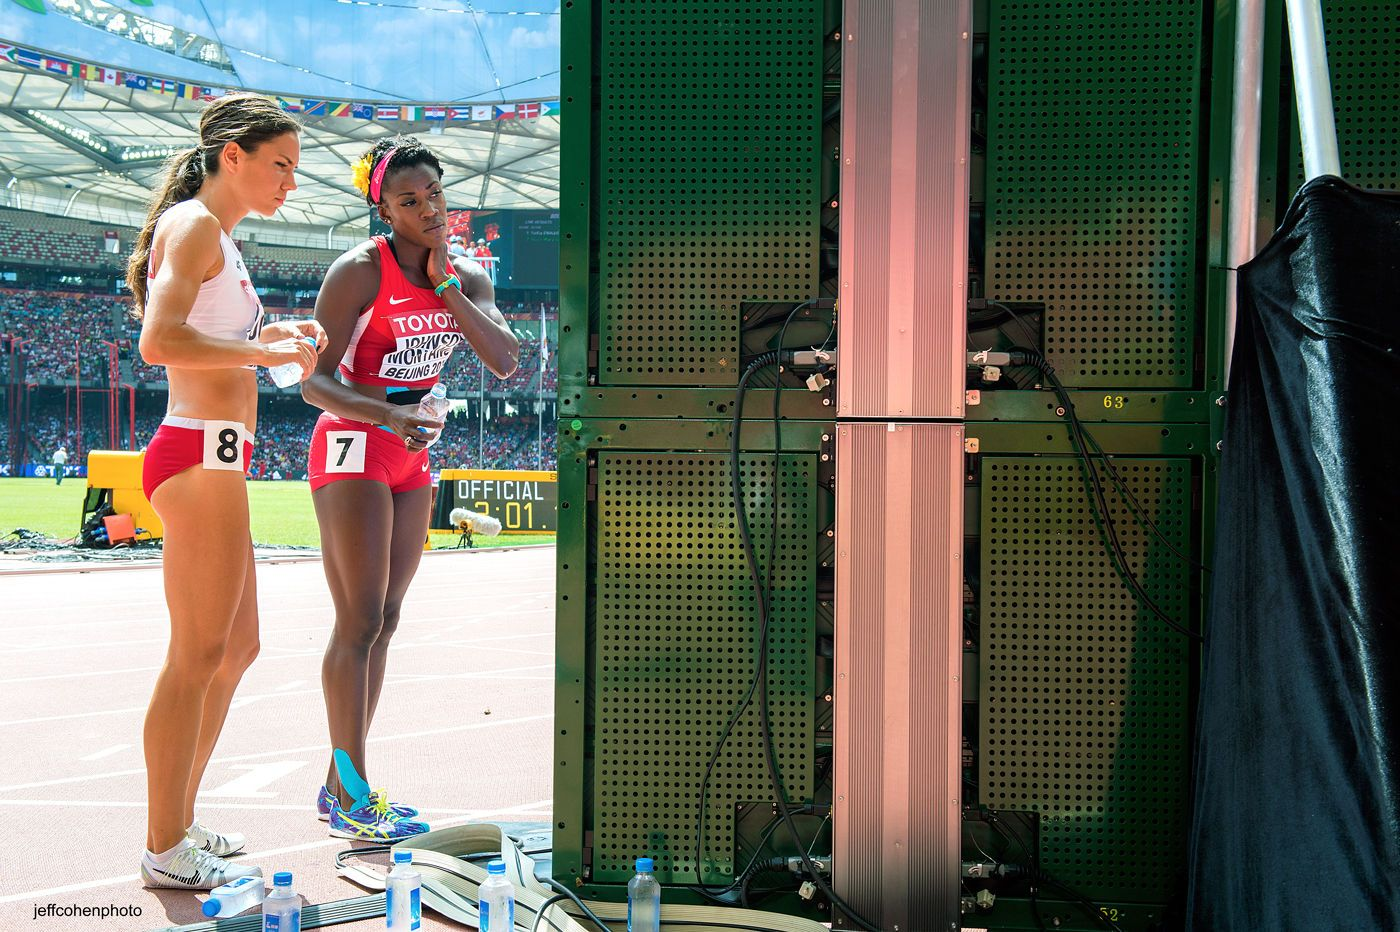 1beijing2015_day_5_montano_800m_pre_heat_jeff_cohen_photo_18514_web.jpg